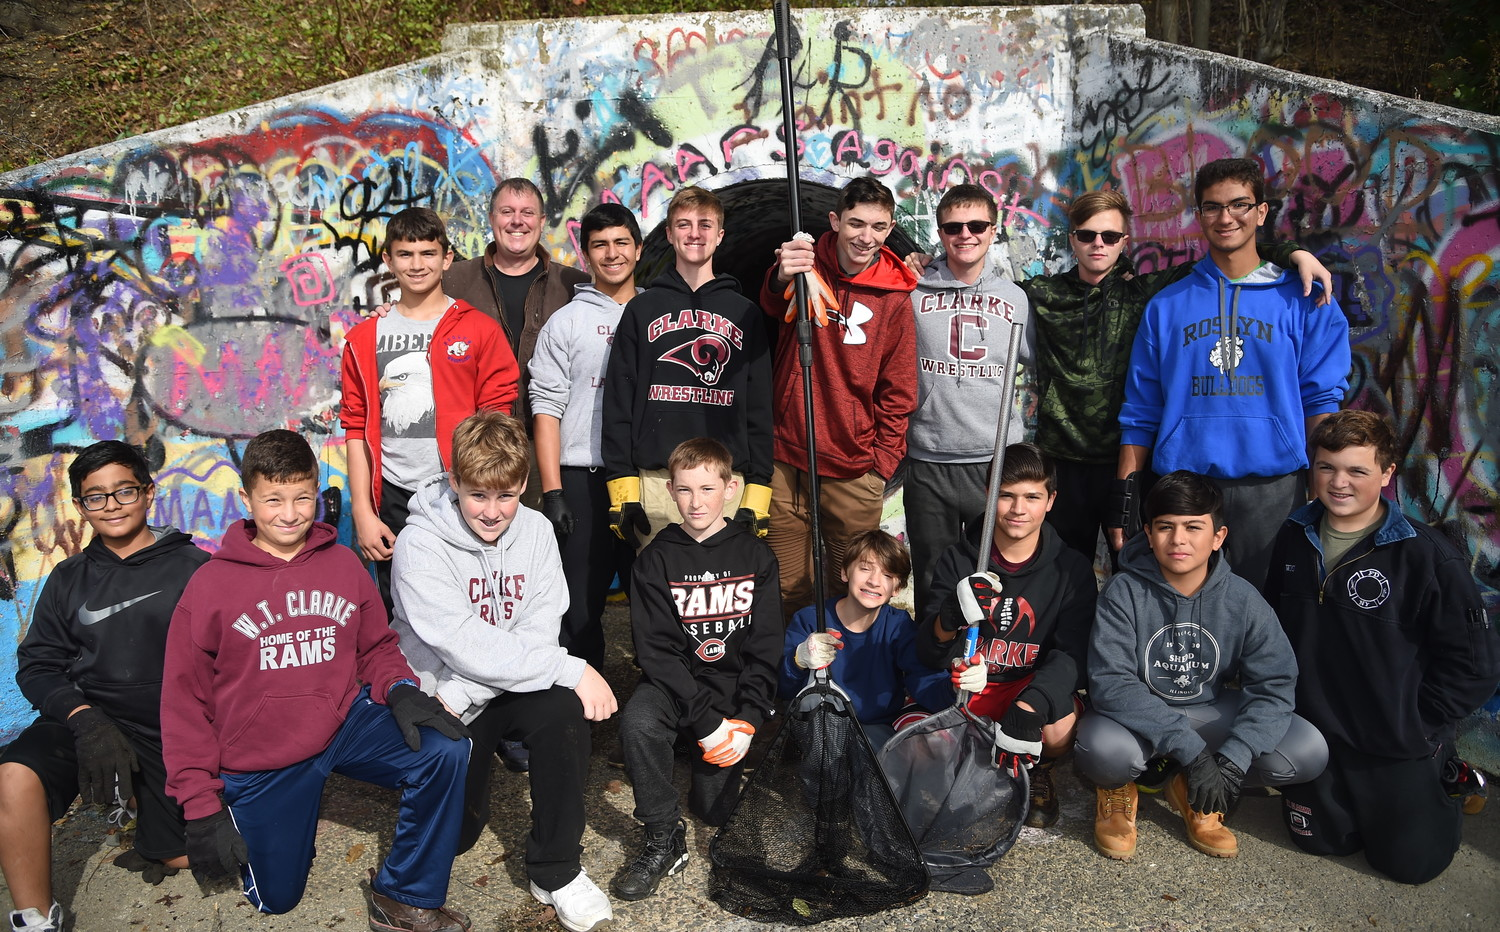 Members of Boy Scouts Troop 469 gathered on Nov. 4 to clean up the bird sanctuary as part of the East Meadow Community Organizations' semi-annual bird sanctuary cleanup.